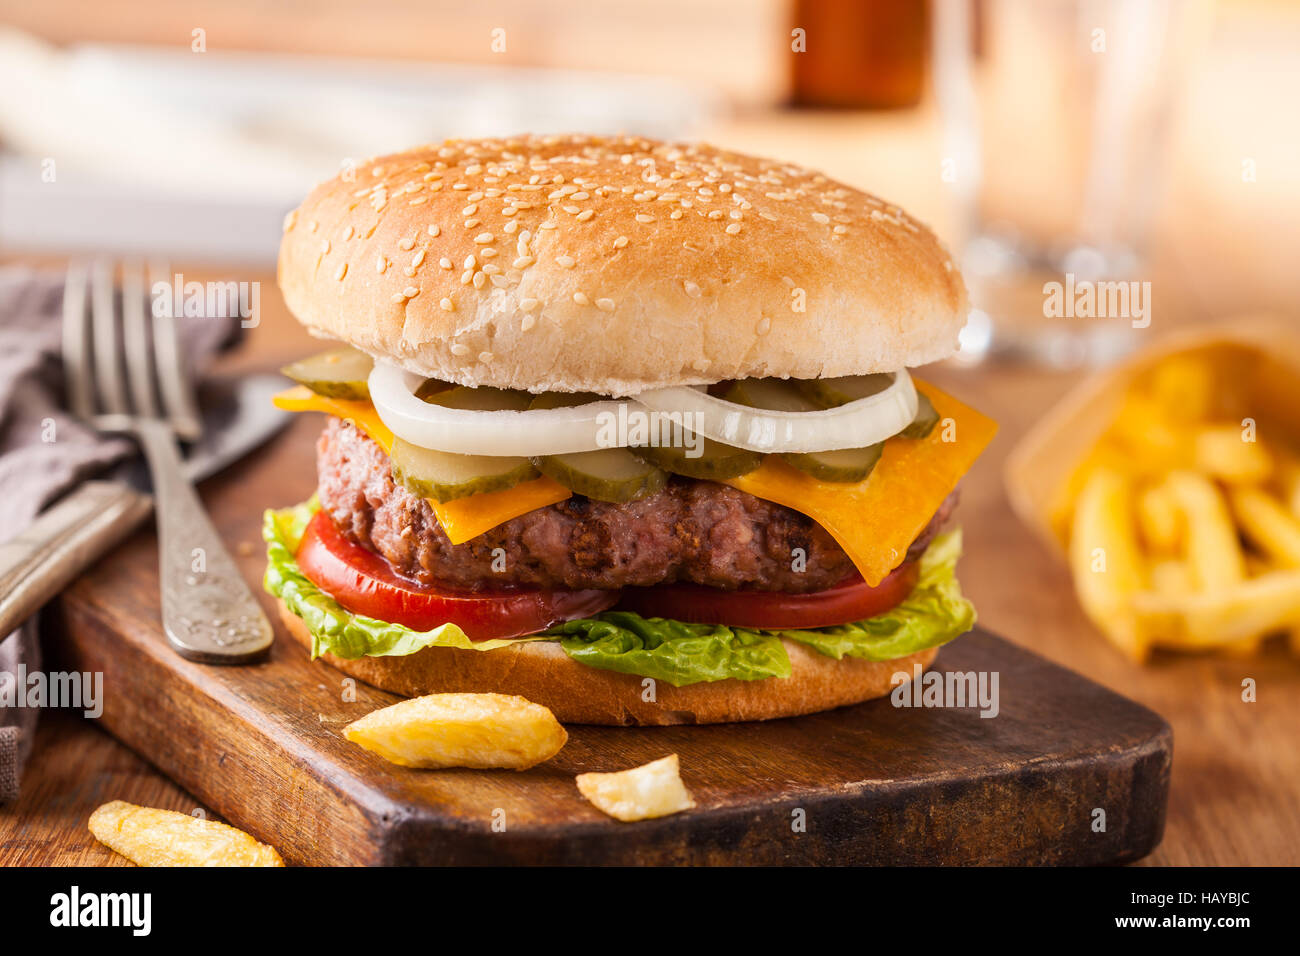 Appetizing hamburger with fries, beer on wooden cutting board. Pickles, onion, and cheddar cheese. - Stock Image